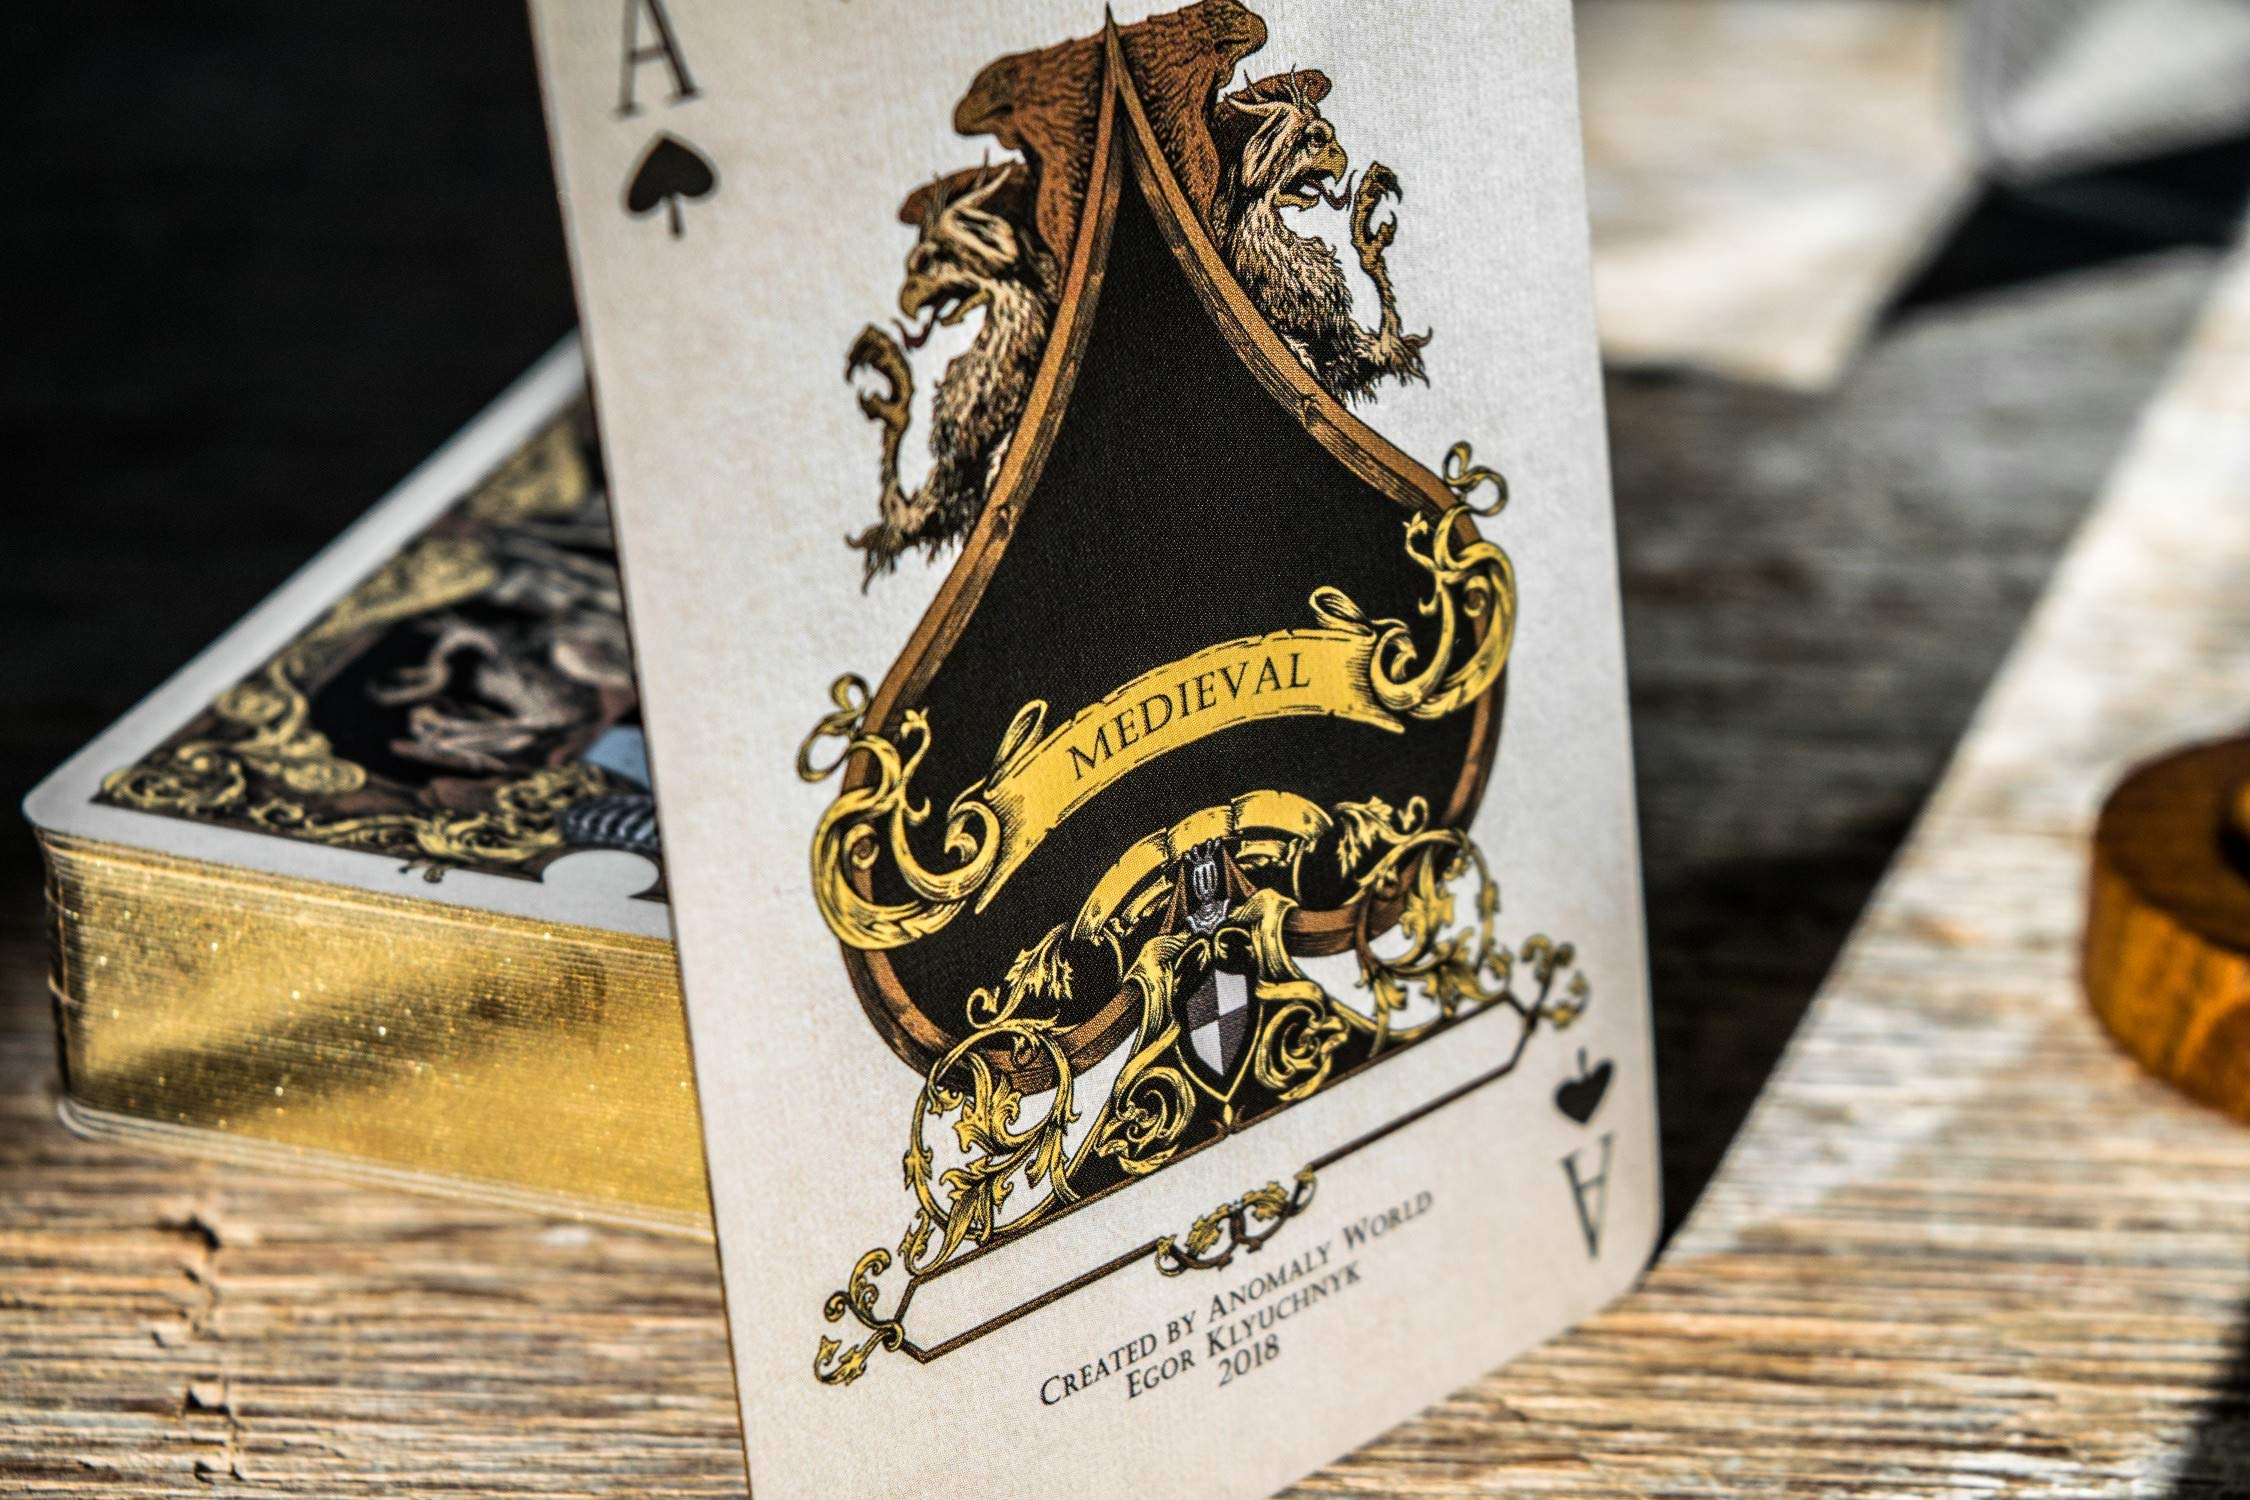 Medieval Royal Playing Cards, Gold Deck of Cards, Cool Magic Cards, Best Poker Cards, Unique Illustrated Foil Colors for Kids & Adults, Playing Card Decks Games, Standard Size by Elephant Playing Cards (Image #7)